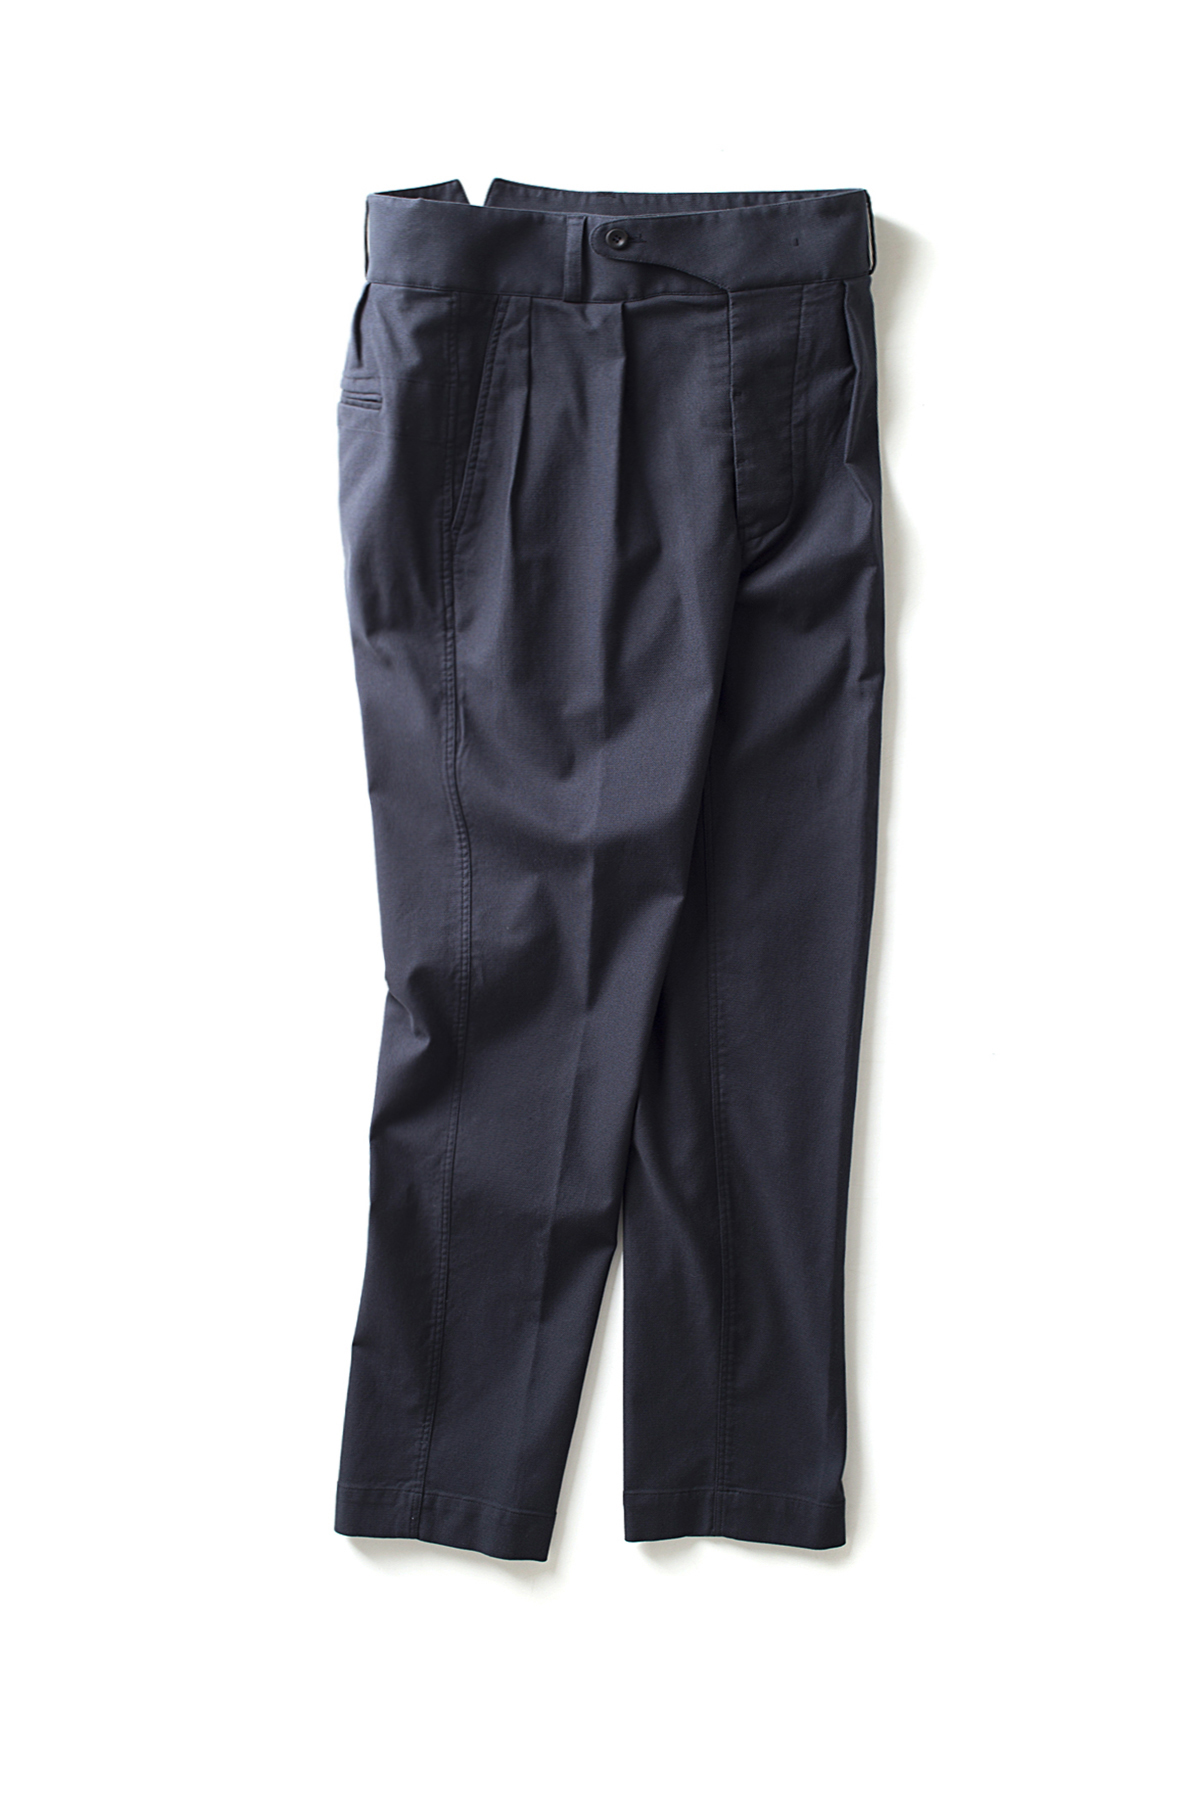 Document : Tucked Trousers